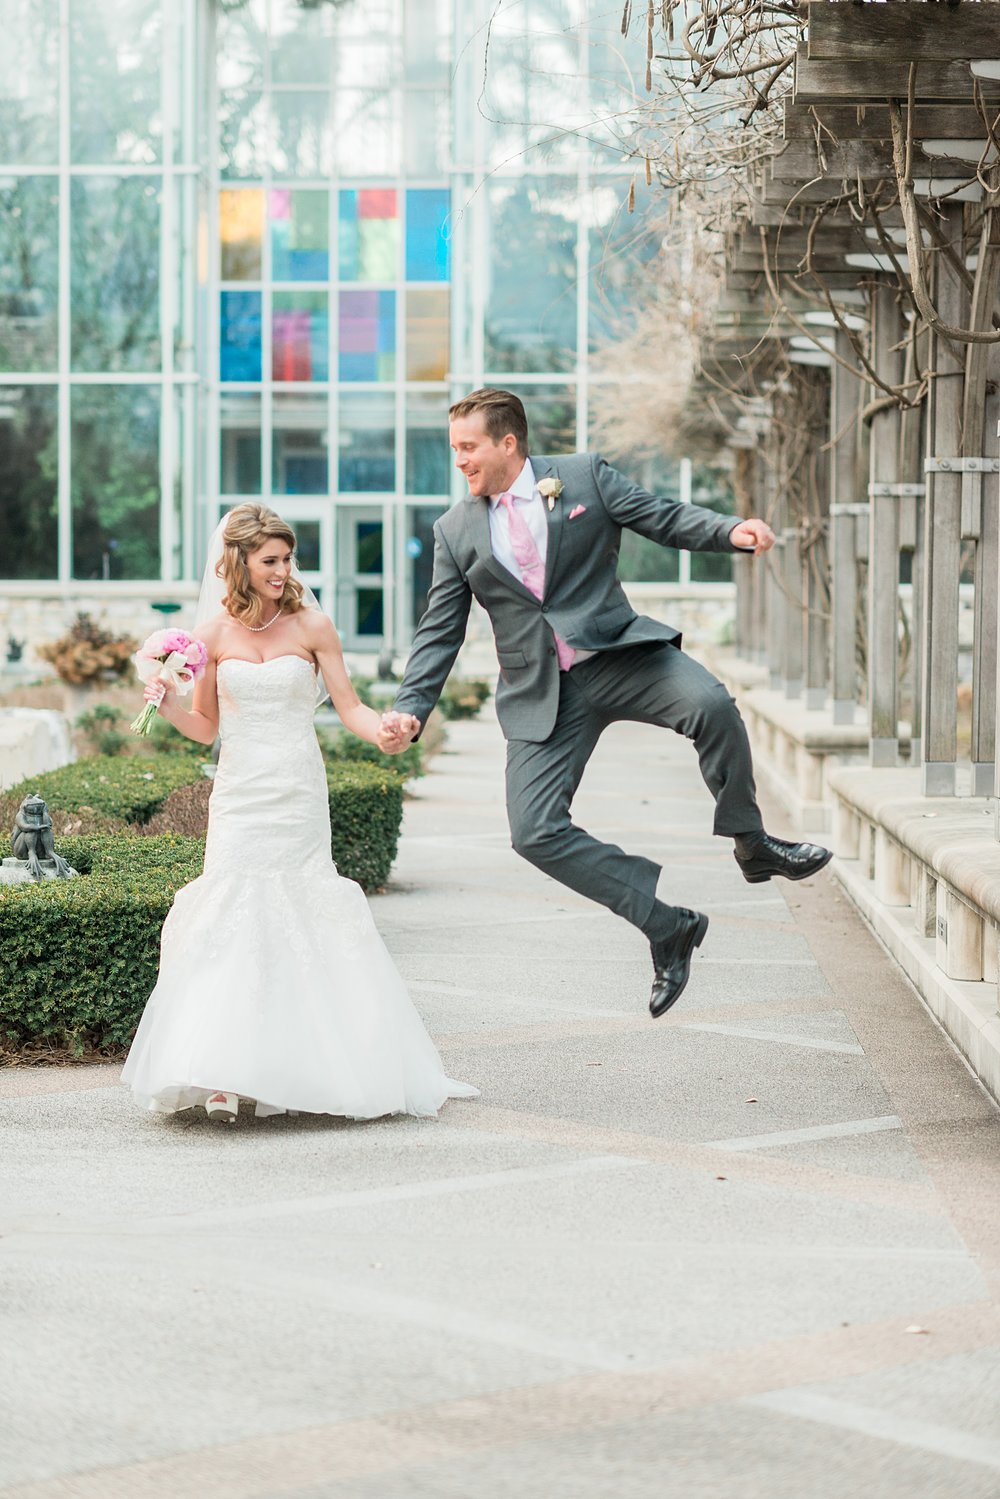 Indianapolis Zoo Wedding | Indiana Wedding Venues | Indianapolis Zoo | Alison Mae Photography | Fun Wedding Photography